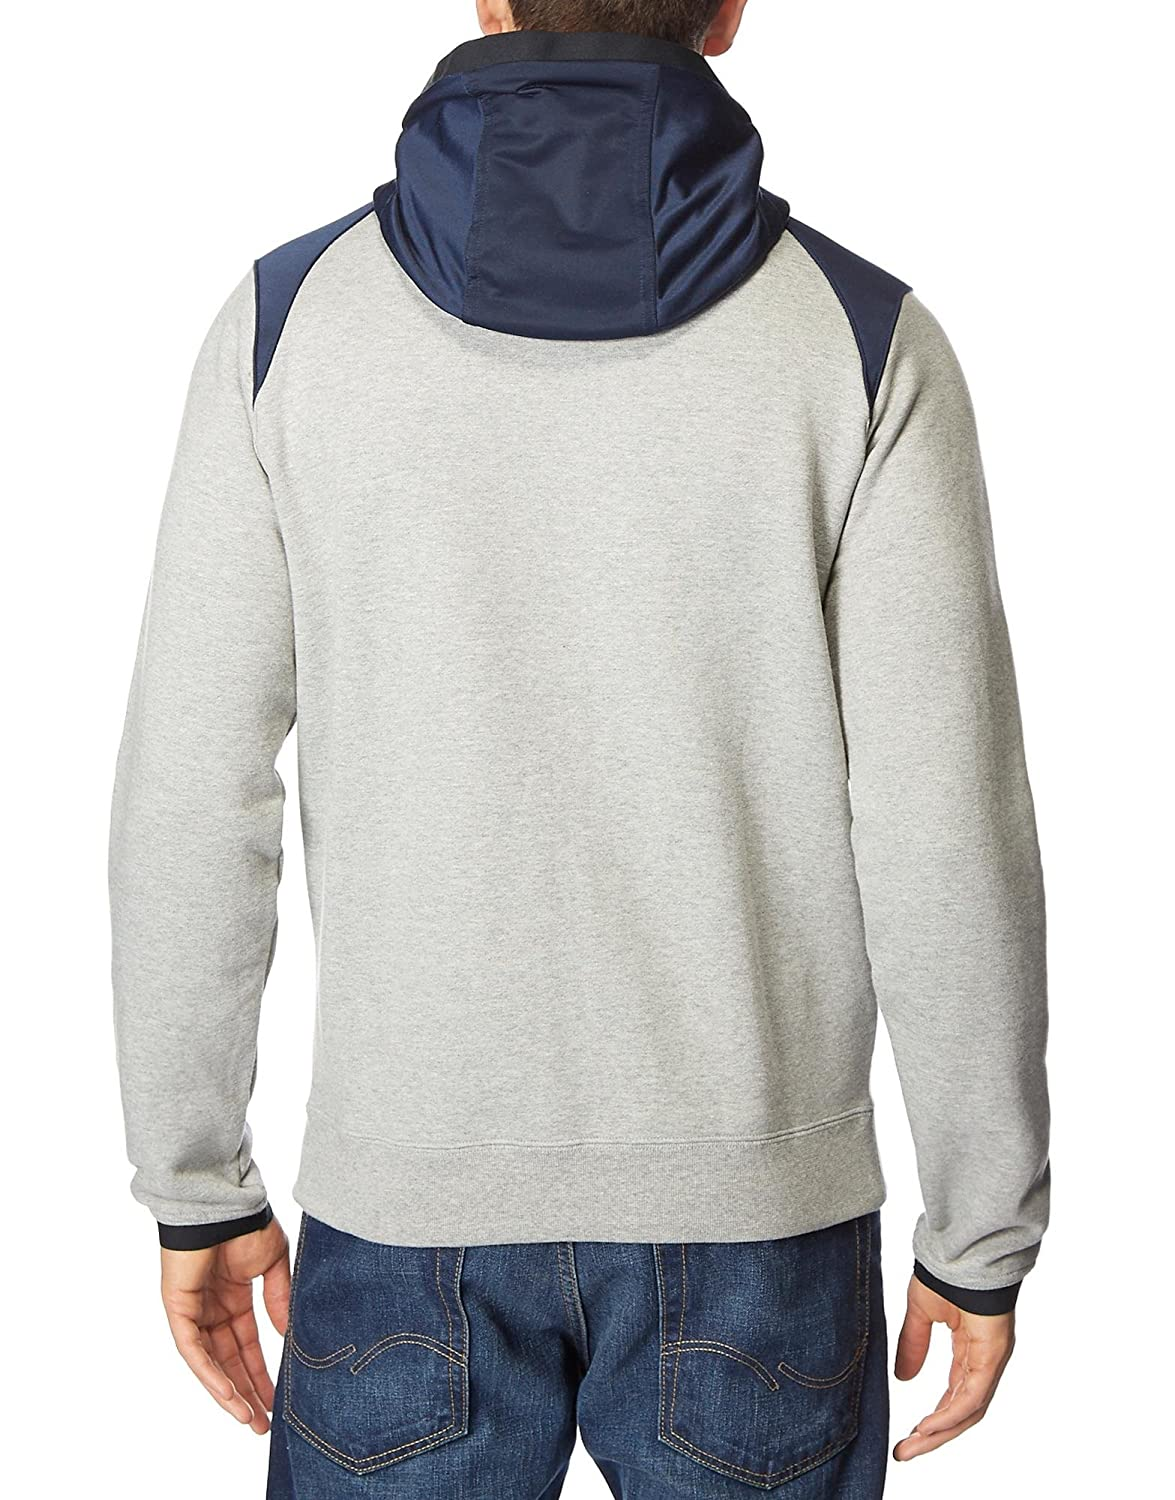 Nike Hybrid Fleece Tracksuit Top Hoodie (Small, Grey/Blue ...